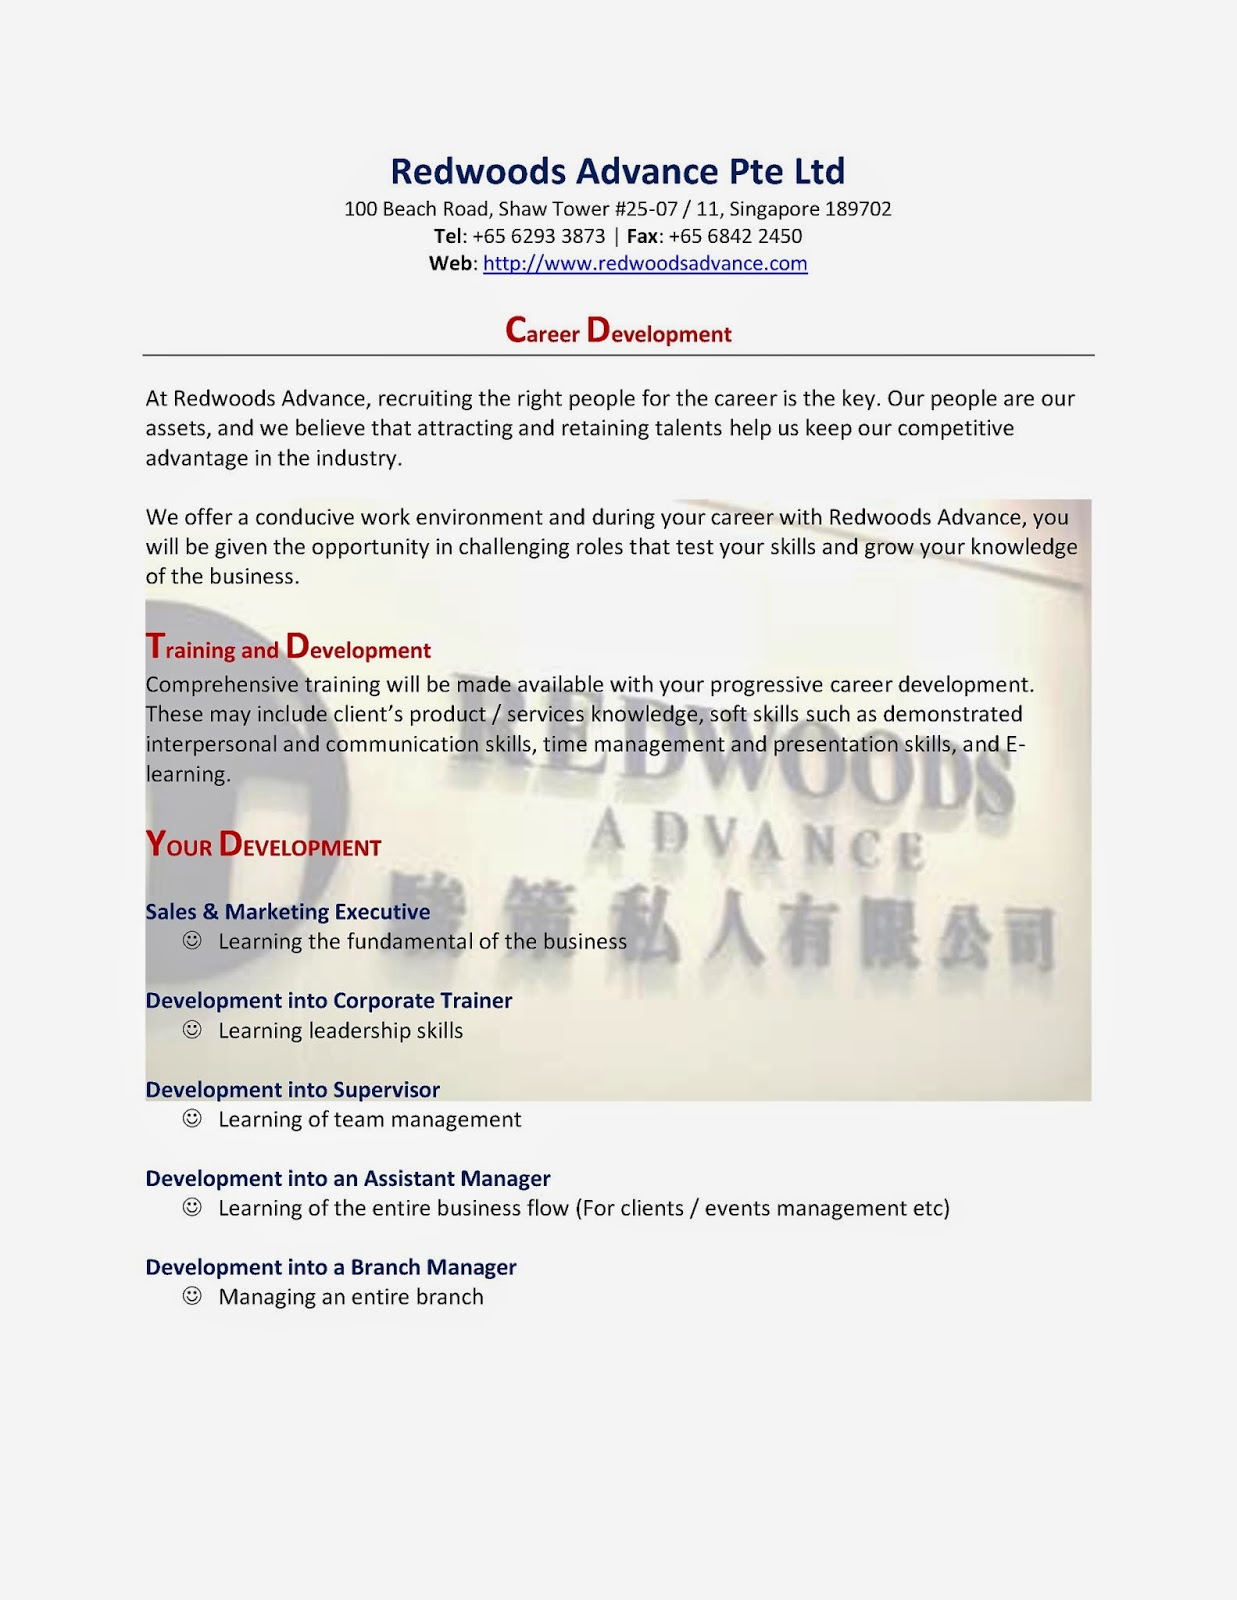 Redwoods Advance - Career Development Programme